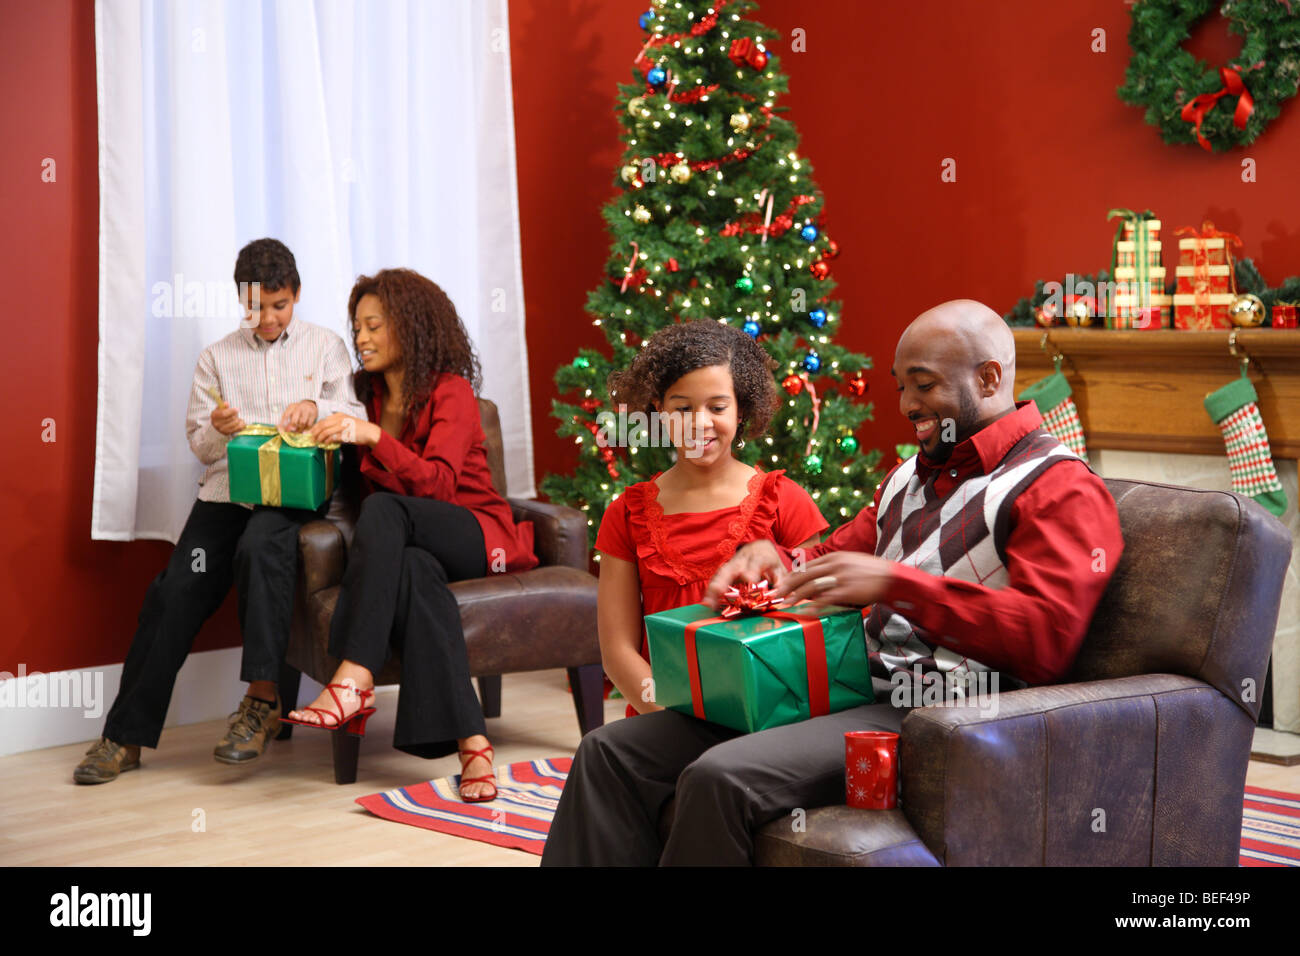 Family opening presents on Christmas morning - Stock Image